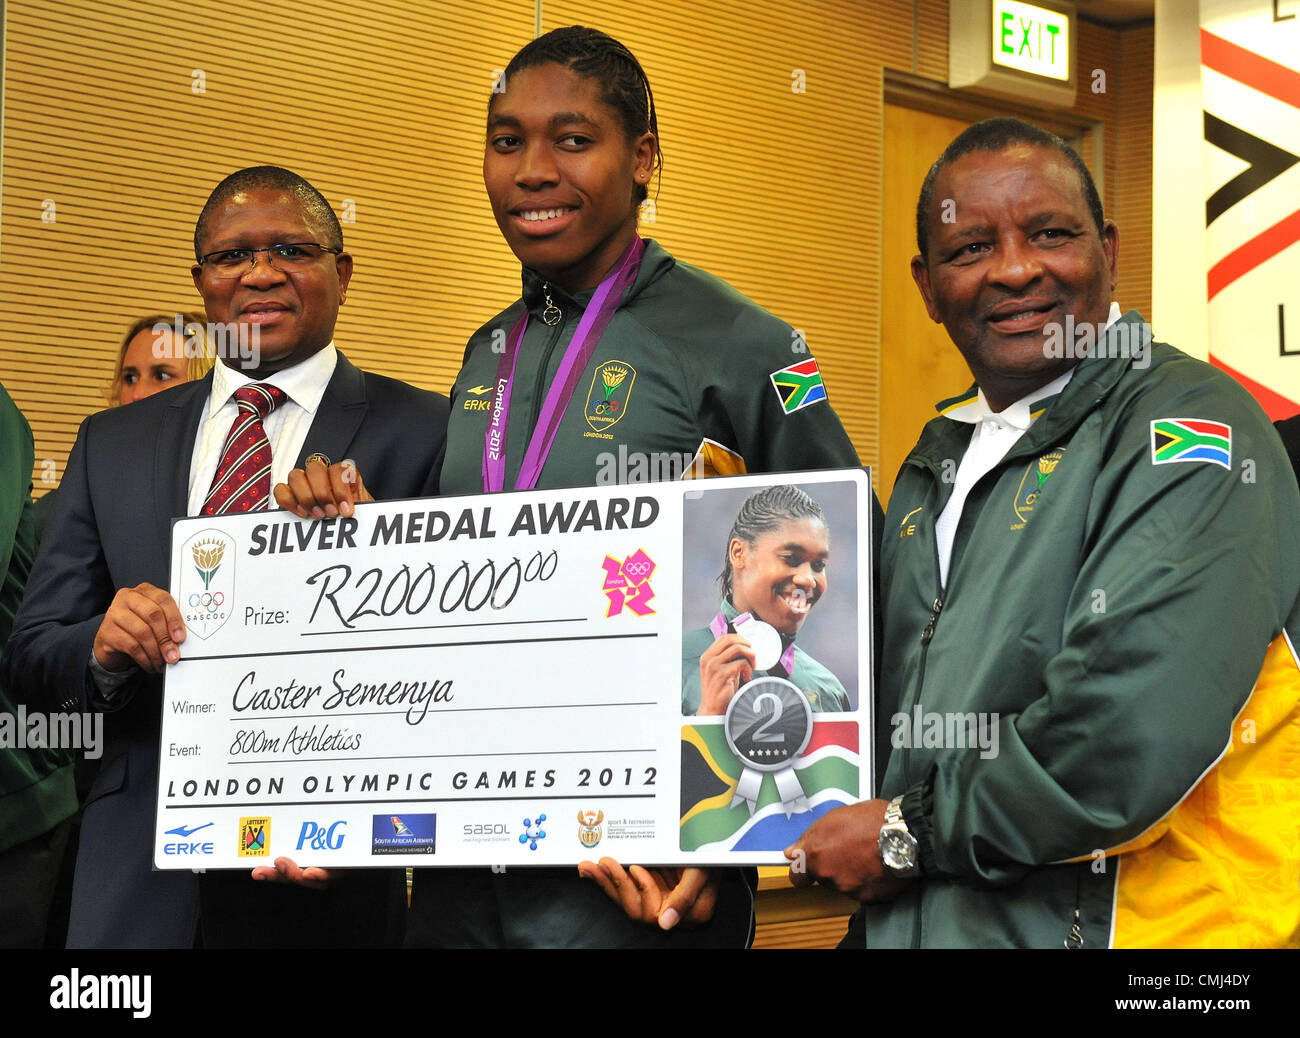 14th Aug 2012 Johannesburg, South Africa. Caster Semenya with Fikile Mdlalula and Gideon Sam during the South African - Stock Image